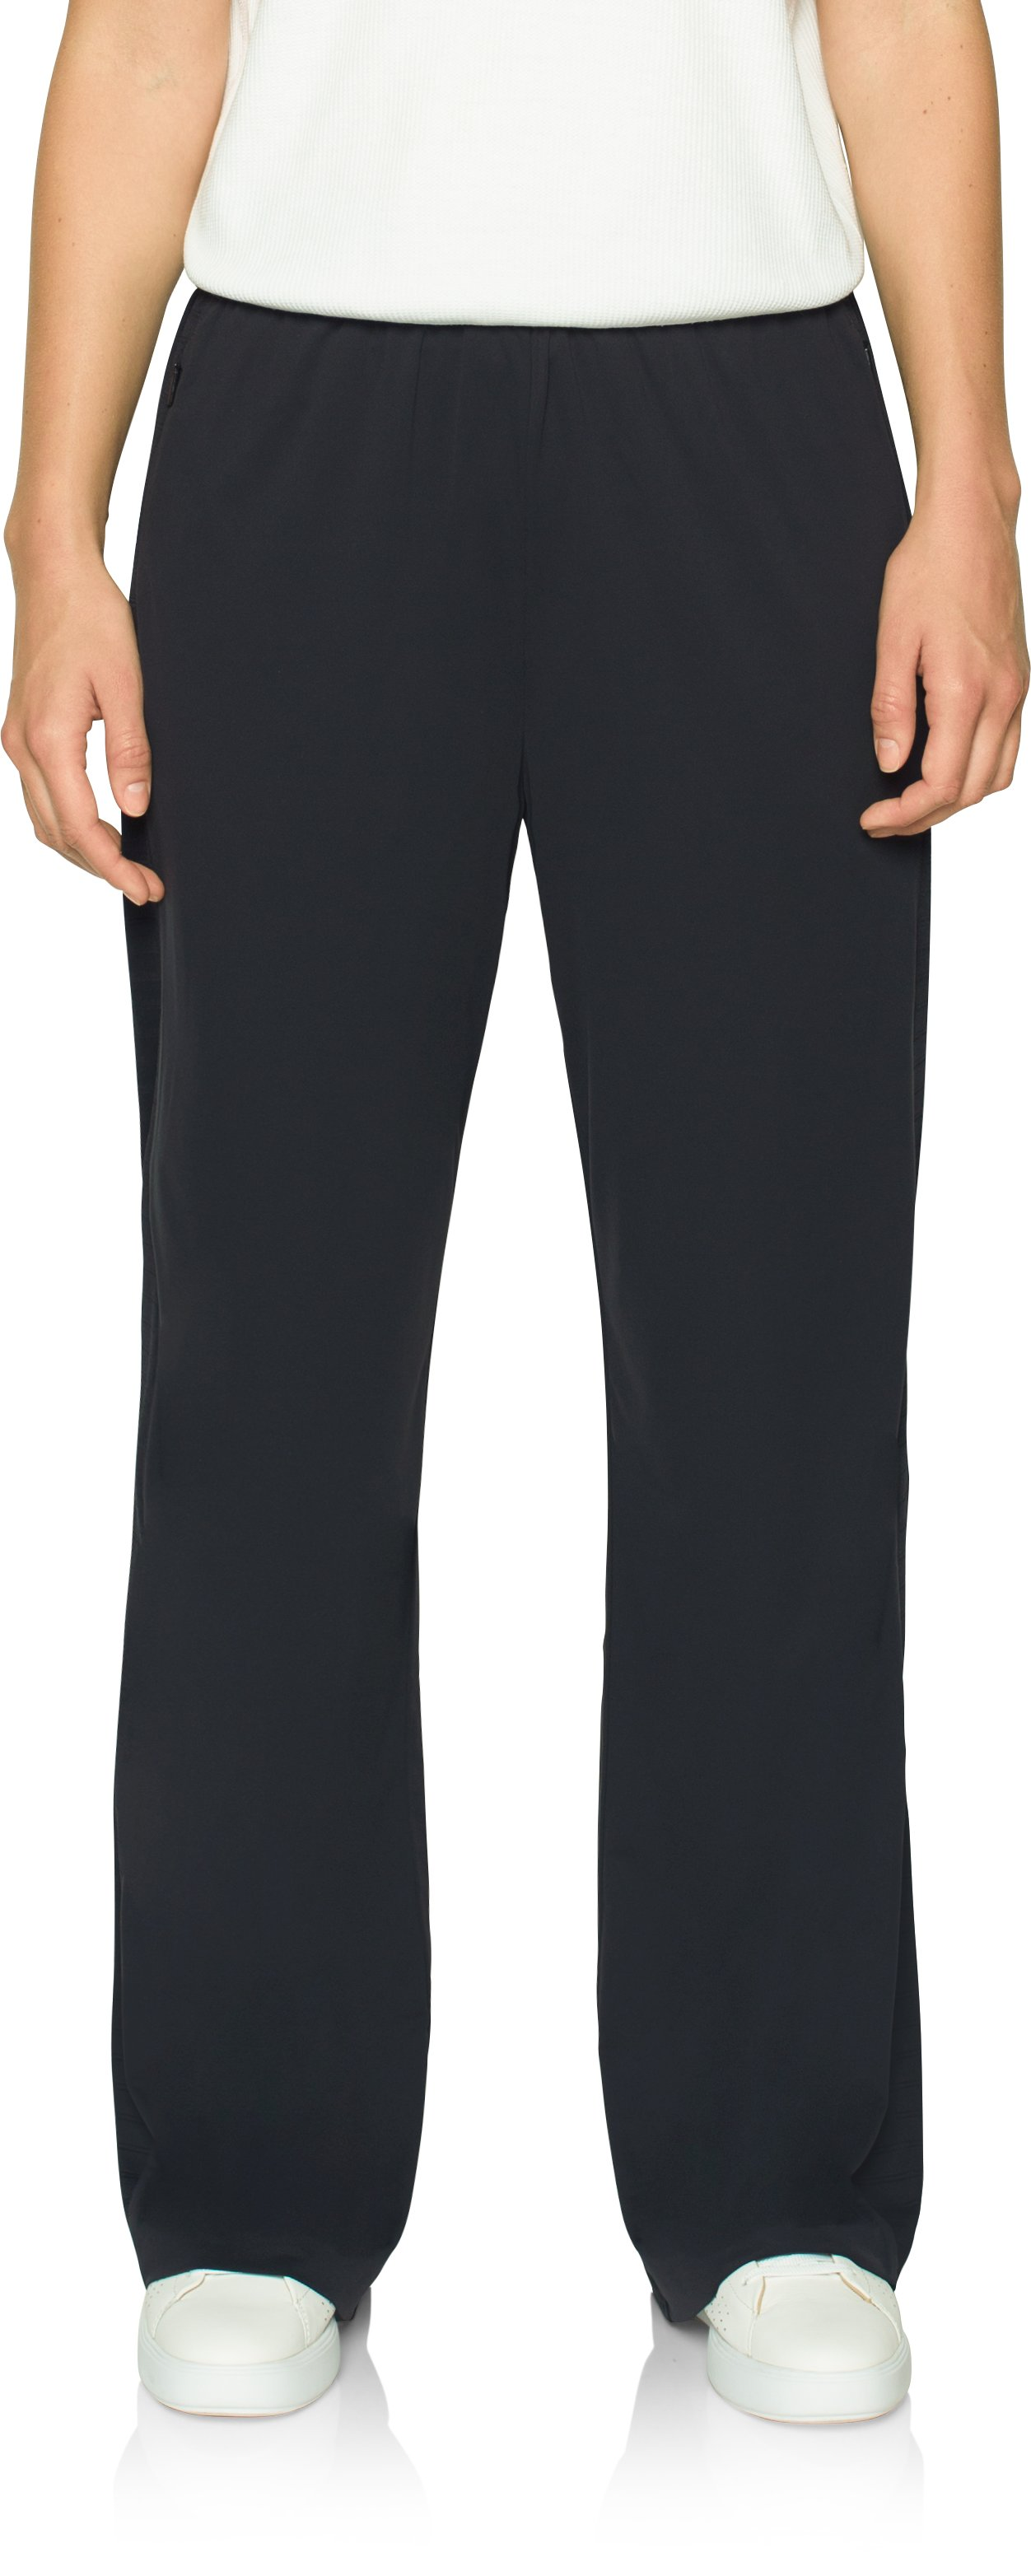 Women's UAS Wide Leg Pants, Black